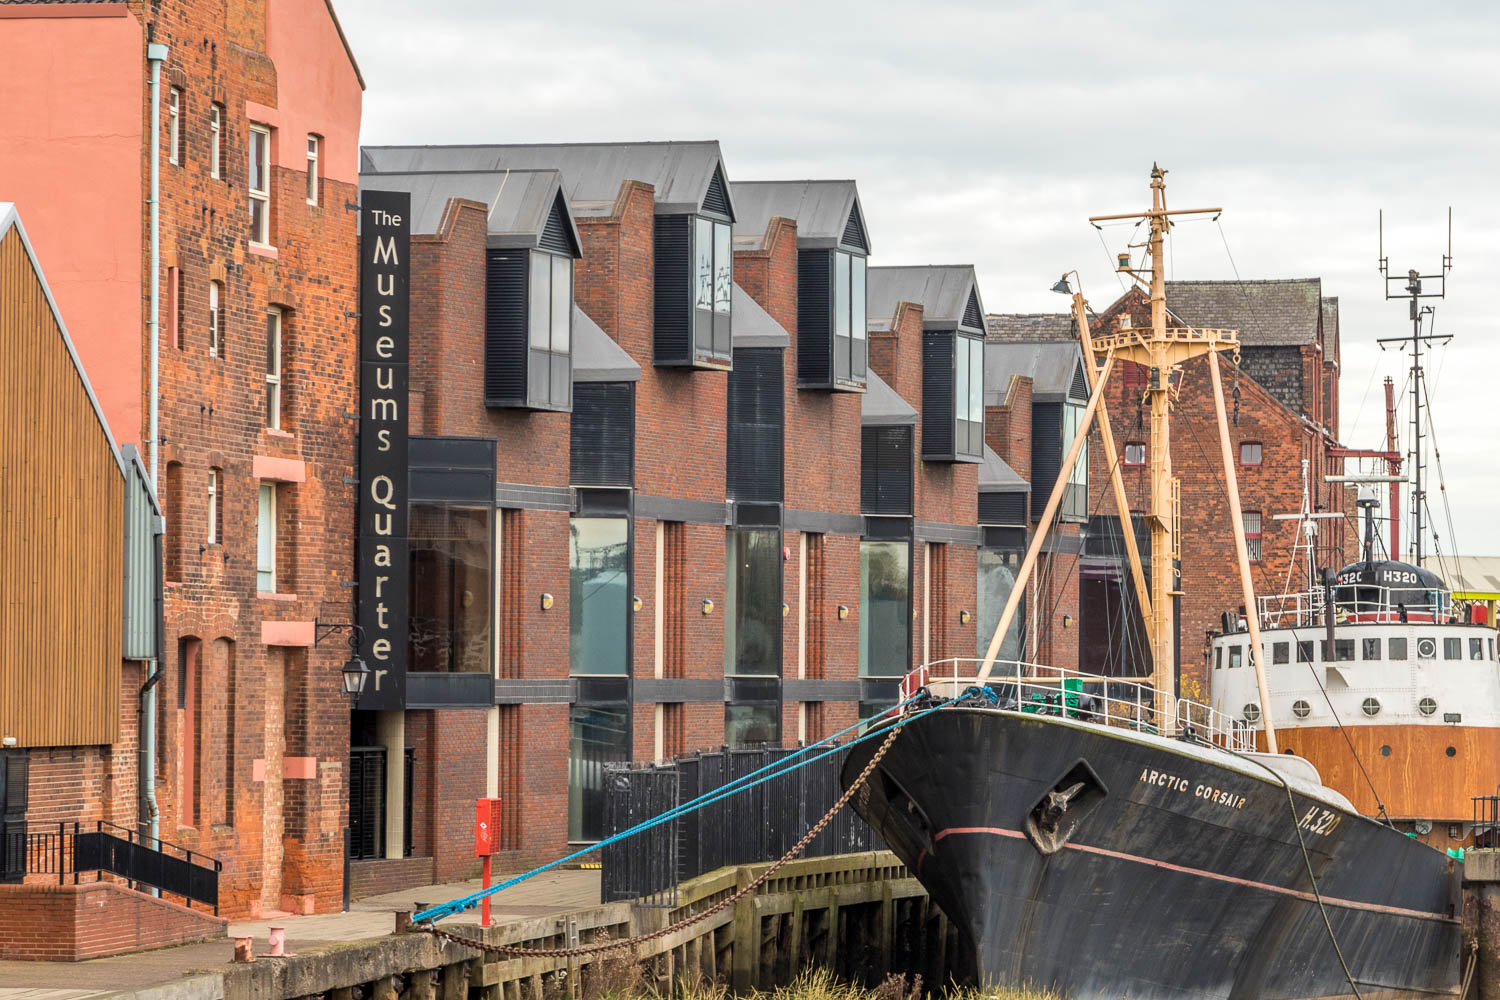 The Arctic Corsair and the Museums Quarter